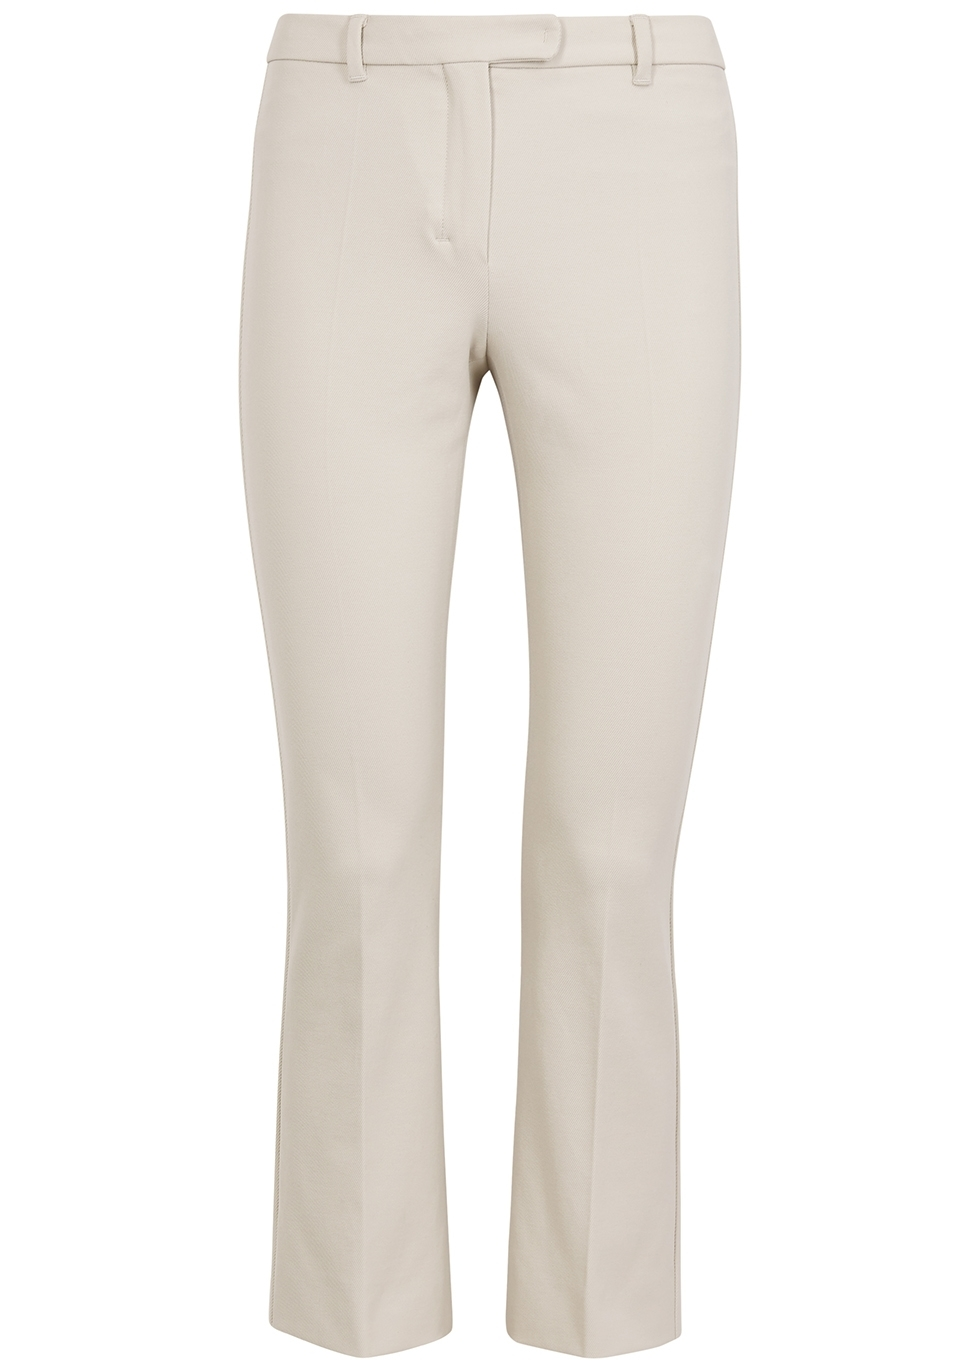 8bc36a57a Women's Trousers, Leggings and Joggers - Harvey Nichols